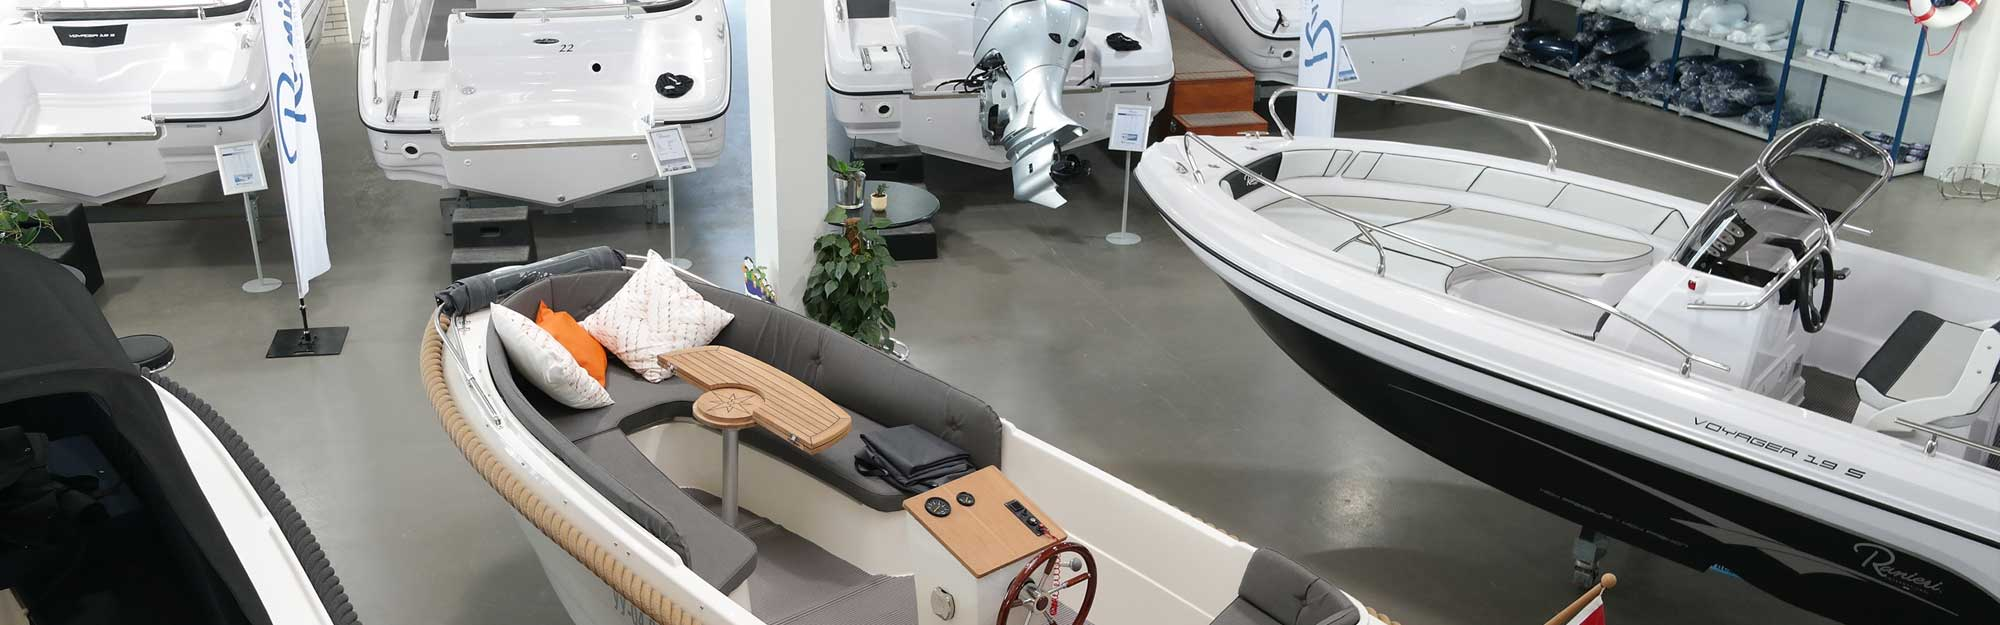 Showroom Slikkendam Watersport